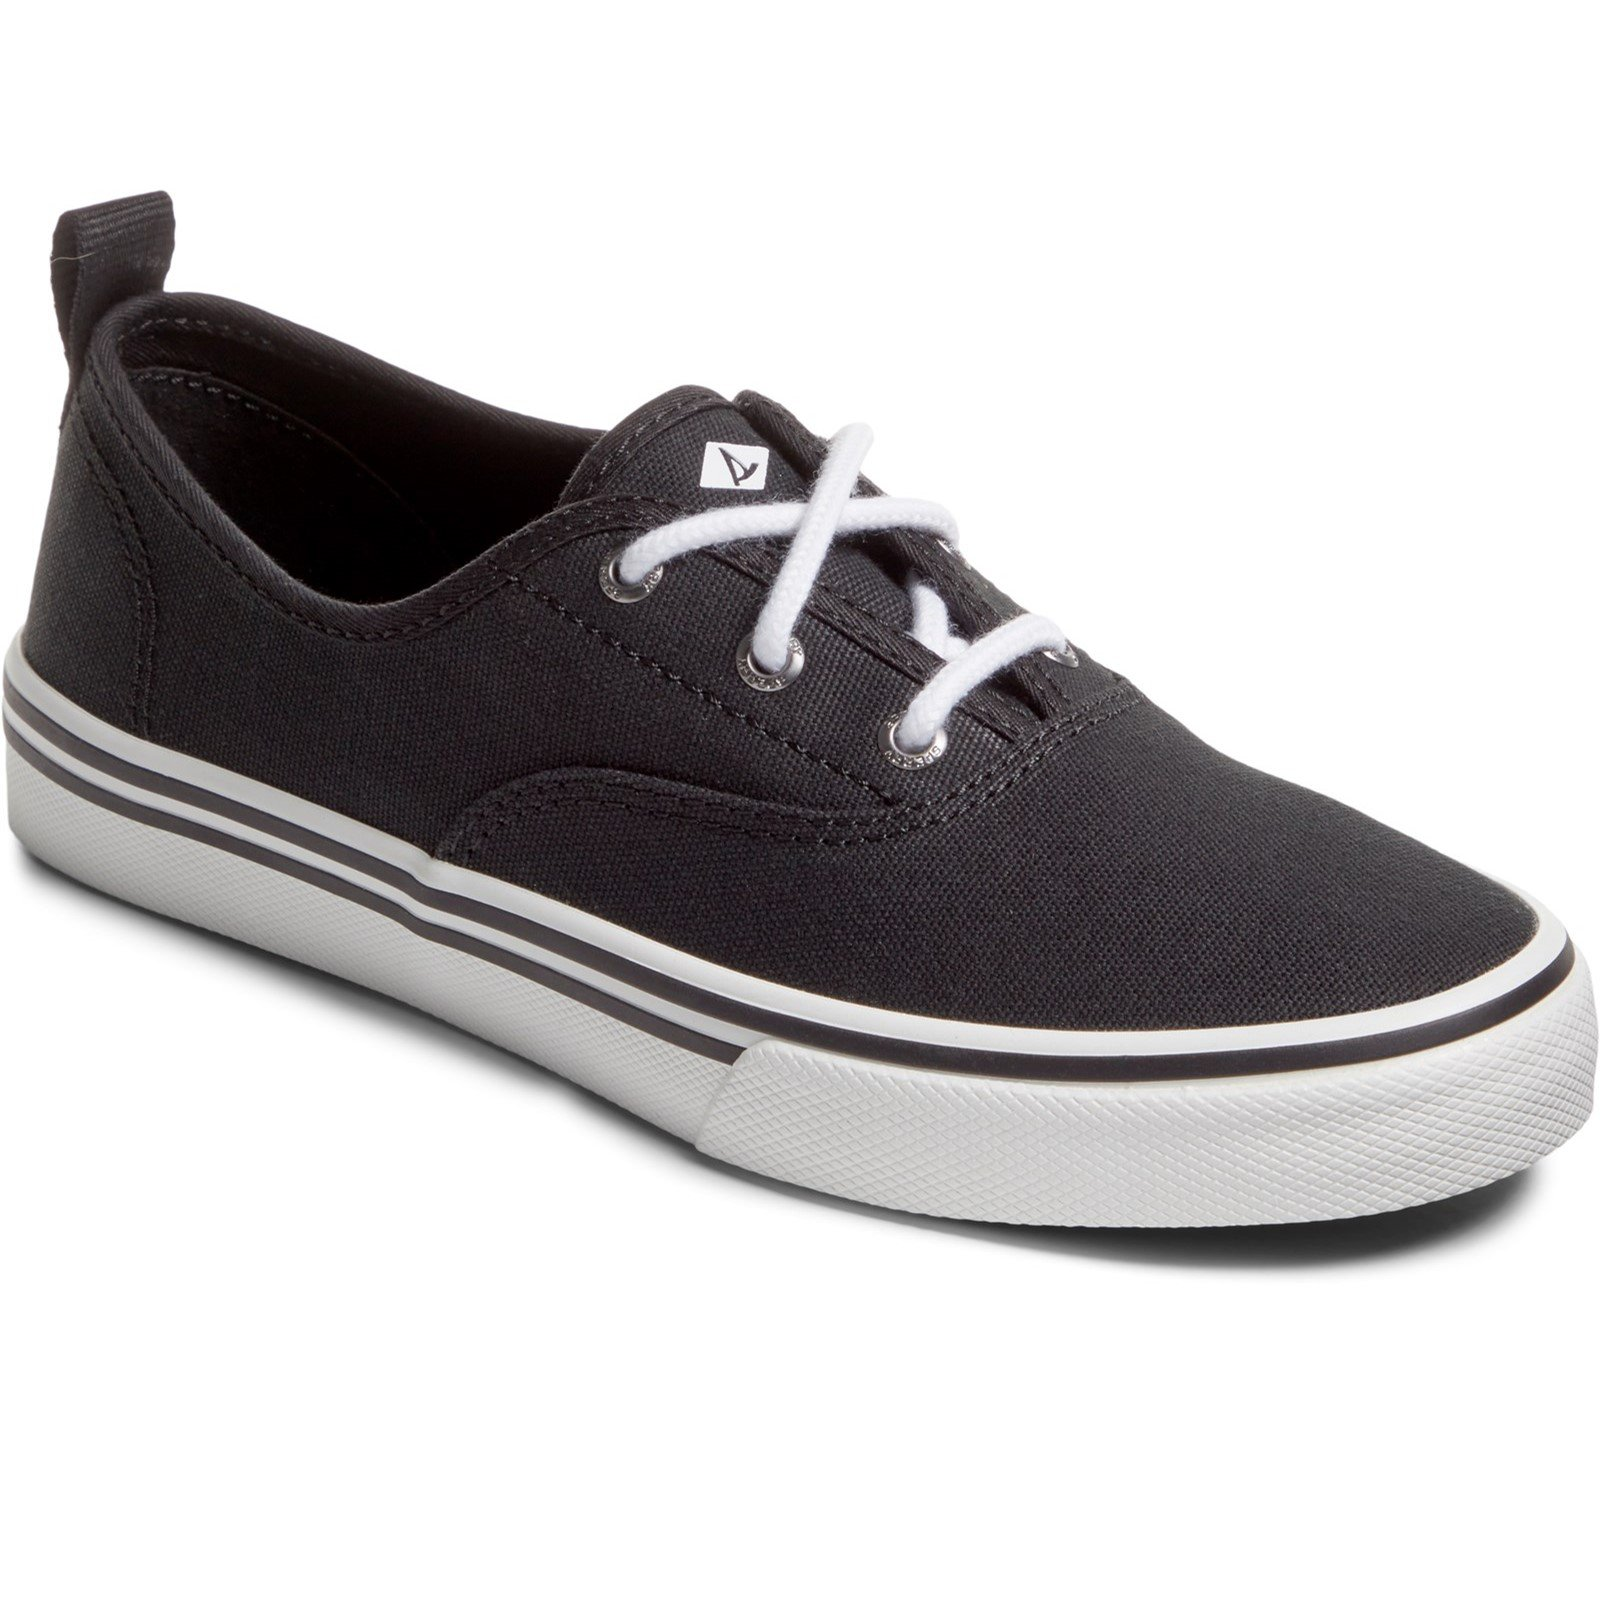 Sperry Women's Crest CVO Trainers Various Colours 32936 - Black 5